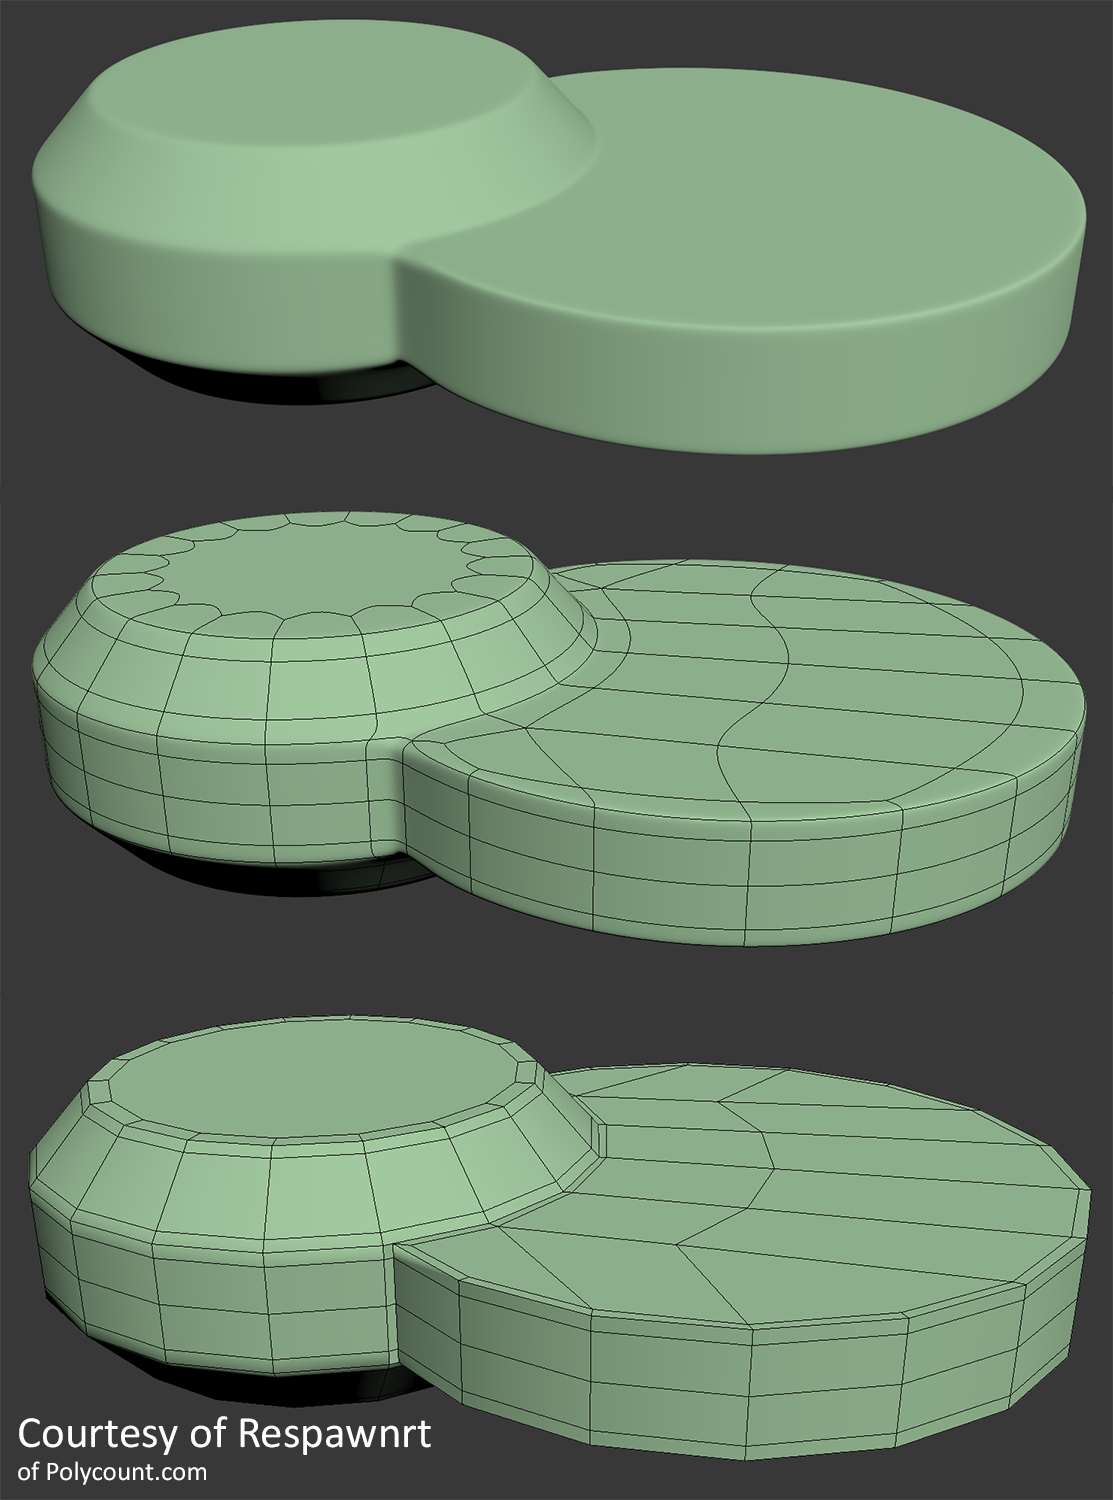 Intersecting disksjust some topology i thought was interesting courtesy of respawnrt polygon modeling hard